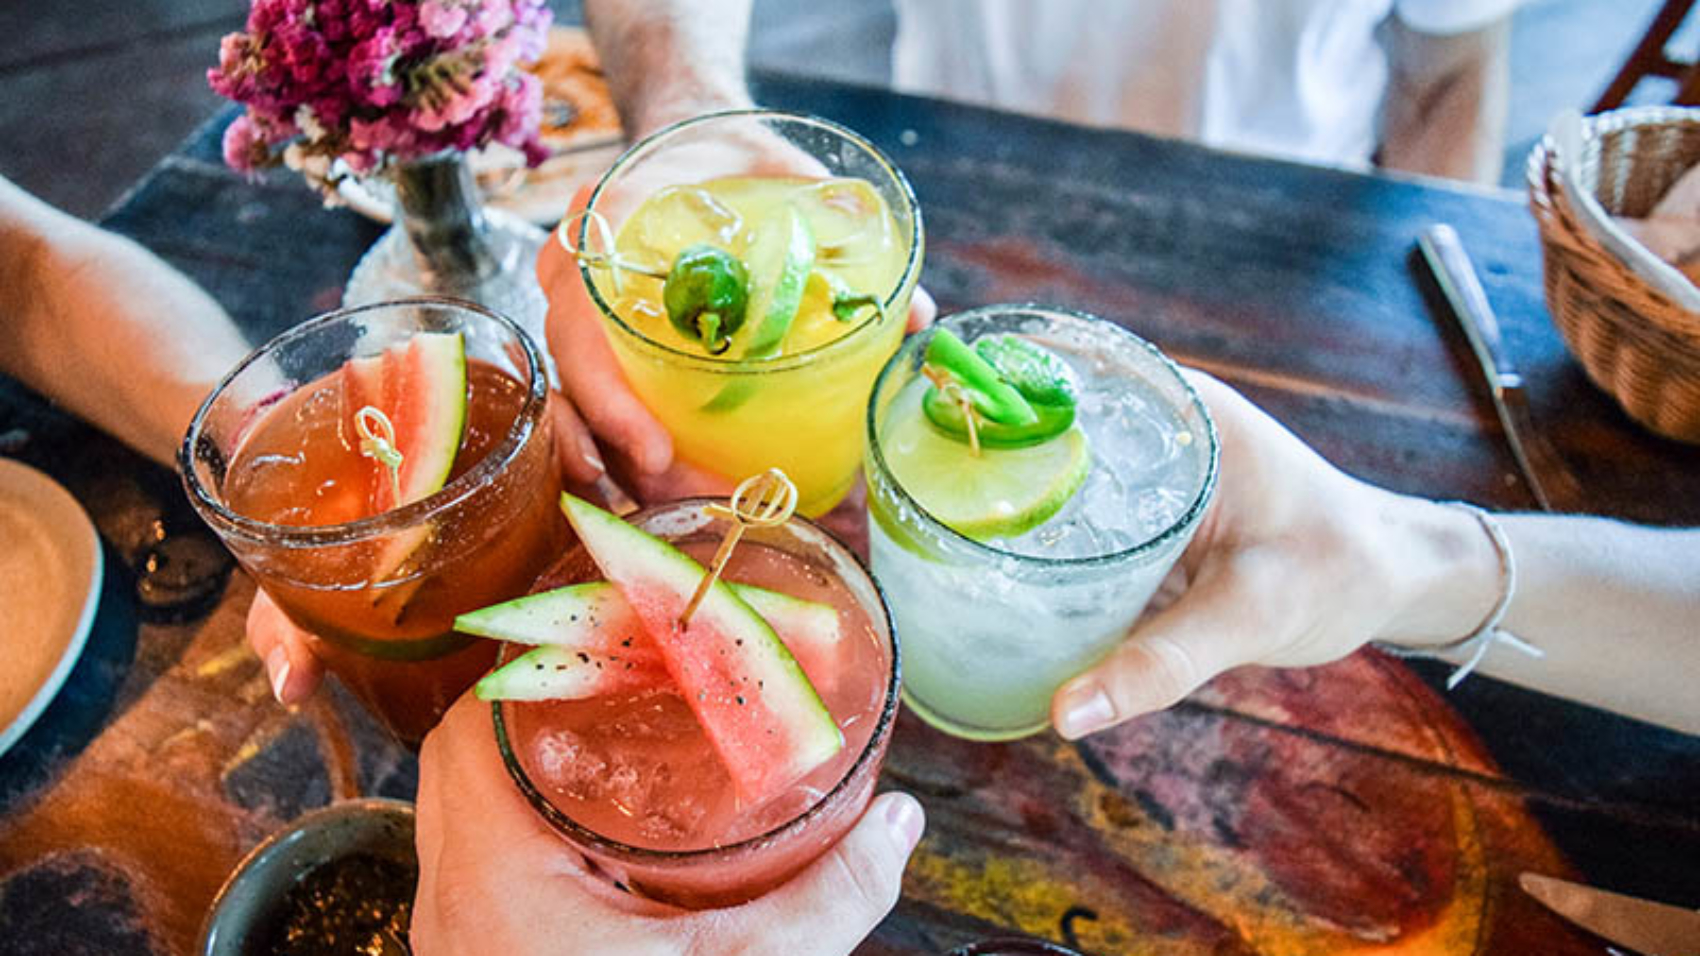 Friends toasting, saying cheers holding tropical blended fruit margaritas.  Watermelon and passionfruit drinks.; Shutterstock ID 780298633